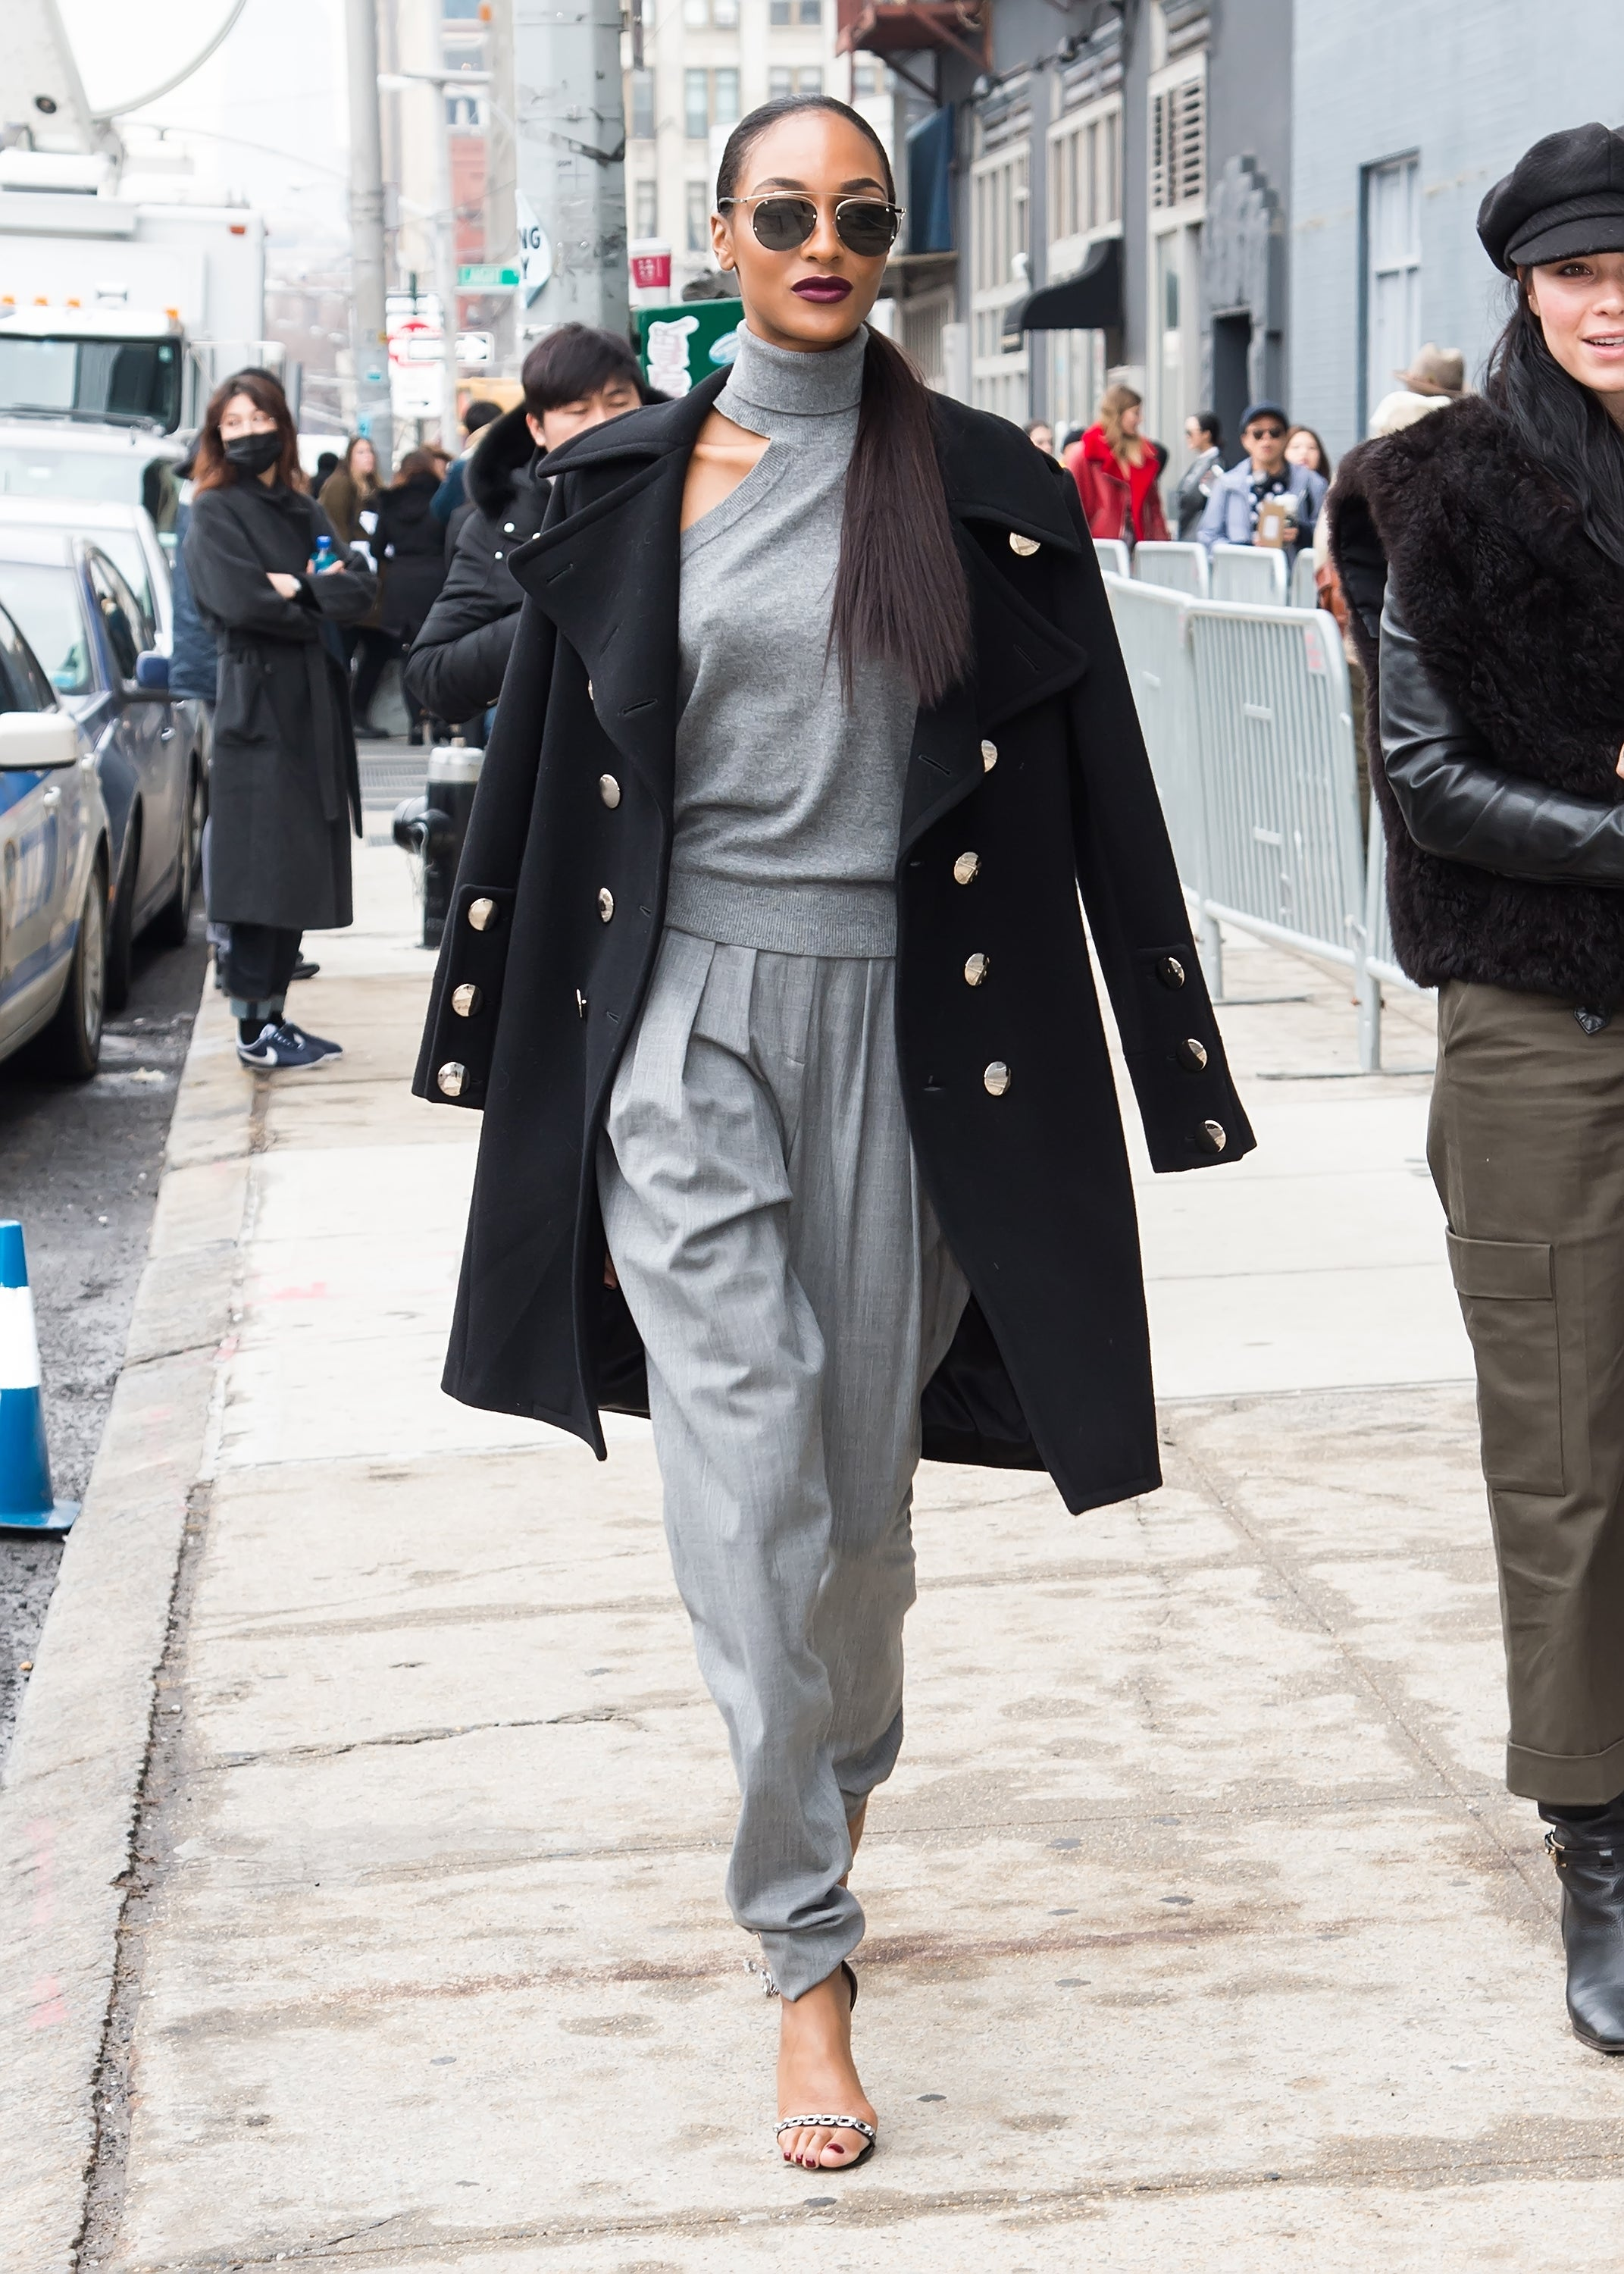 Forum on this topic: The Best Street Style Moments at Haute , the-best-street-style-moments-at-haute/